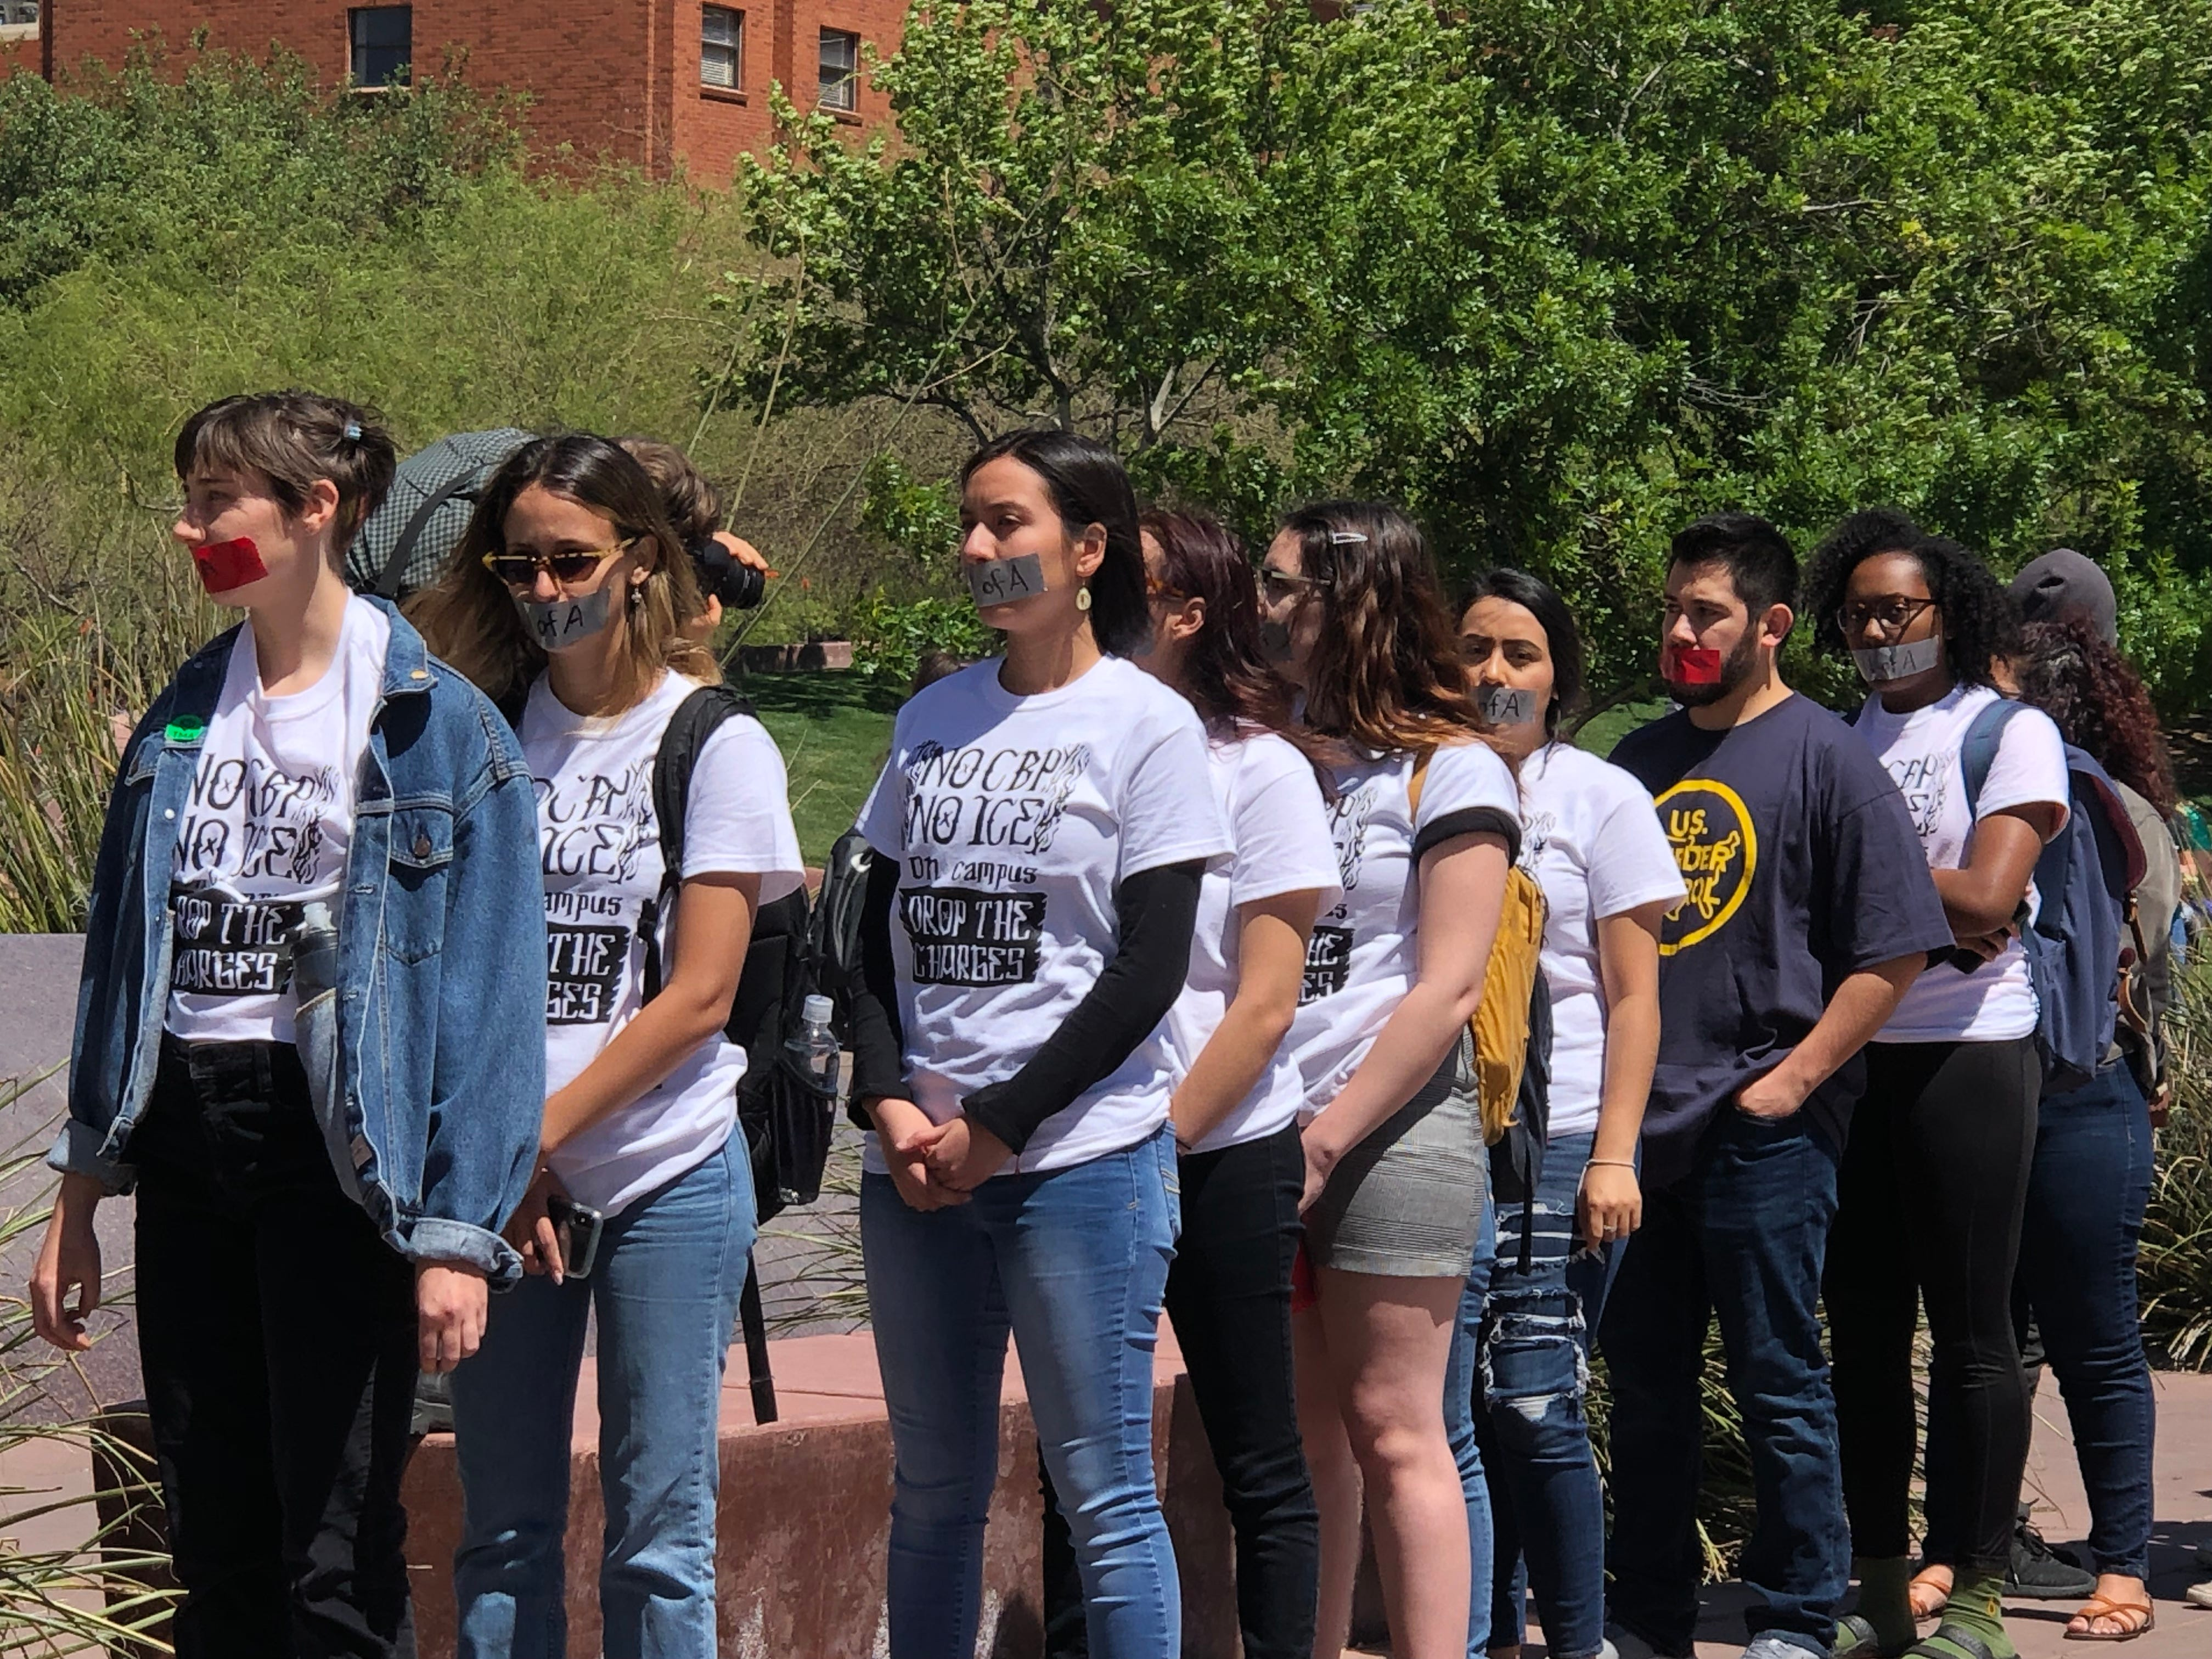 Students wait in line to get into the Arizona Board of Regents meeting in Tucson on April 11, 2019, to protest the charges against three students in the Border Patrol protest on March 19.